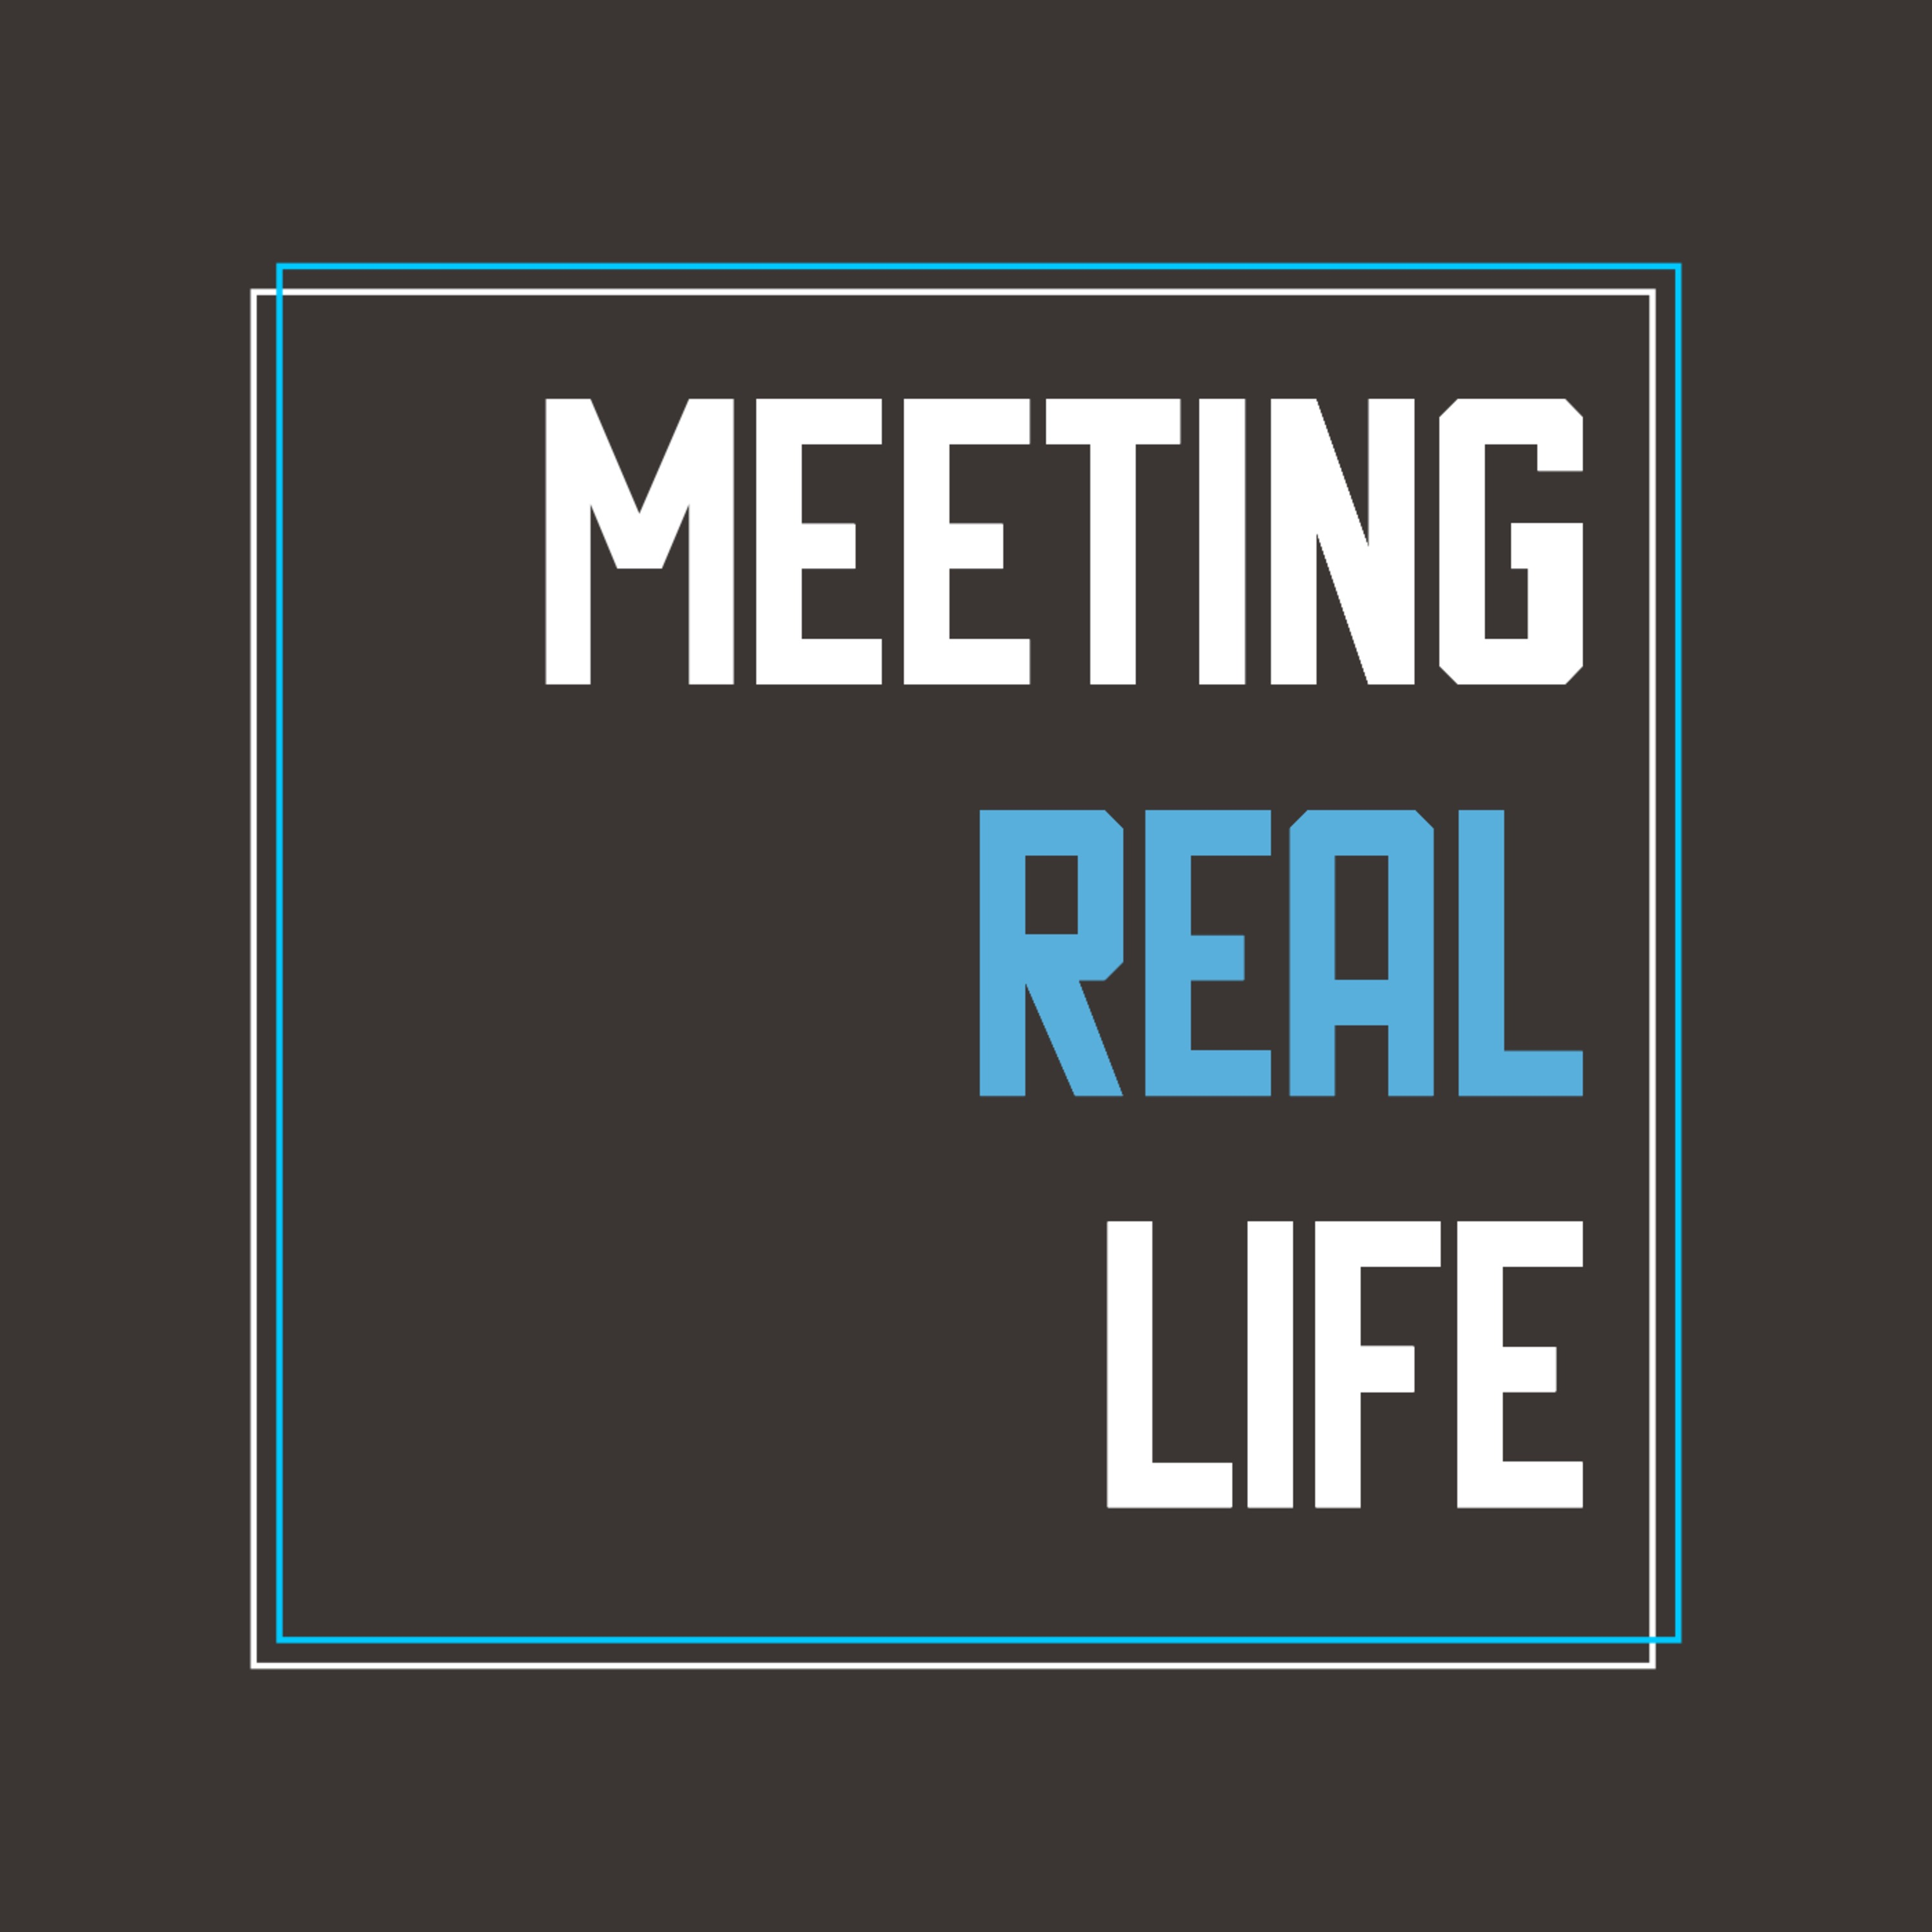 Meeting Real Life - Teaser